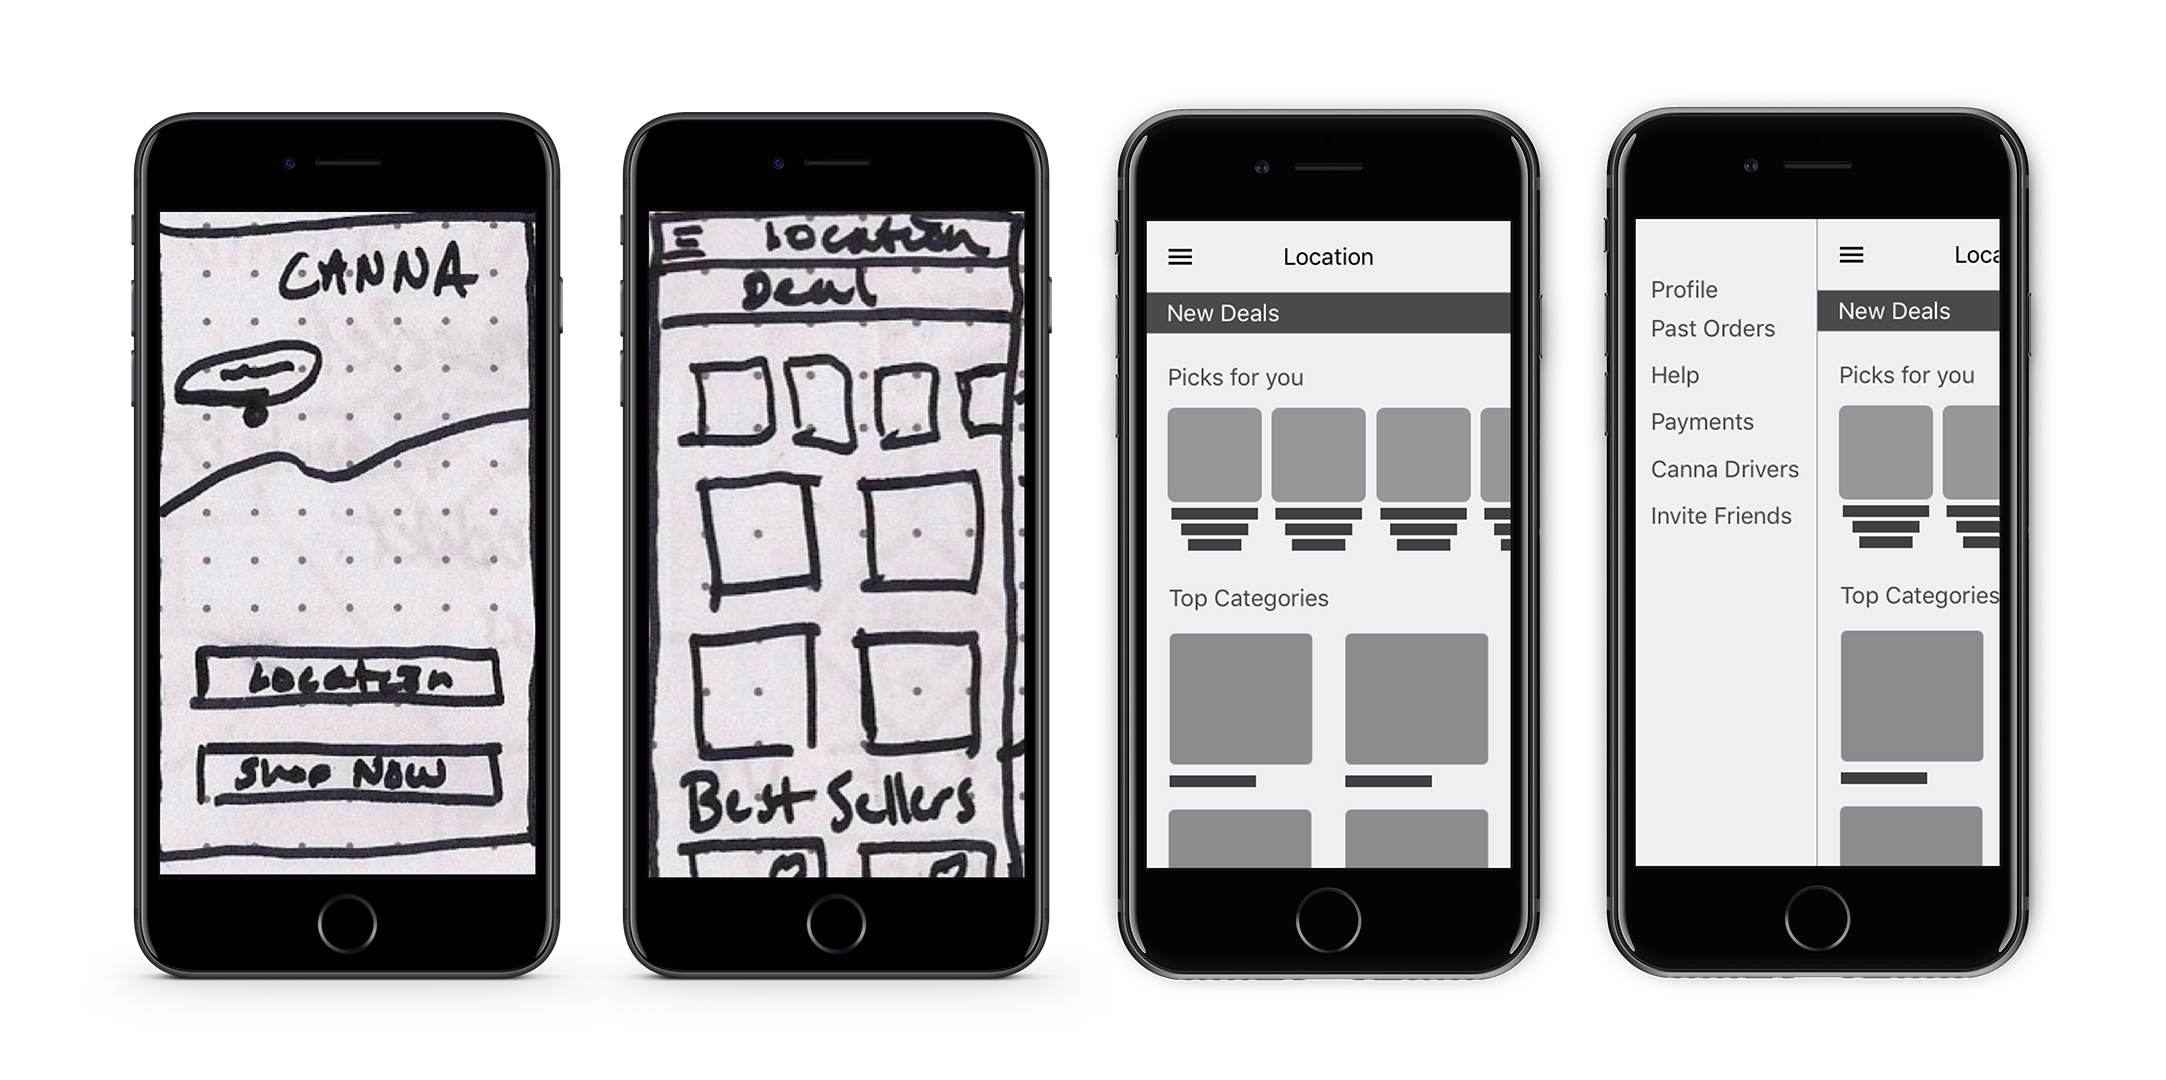 Wireframes & UX Structure - I then moved on to create wireframes with basic compositions, proportions and elements. This helped to define the hierarchy of items on the screen and communicate what the items on that page should be based on. We used these wireframes to further test our hypothesis around how users would interact with the app.